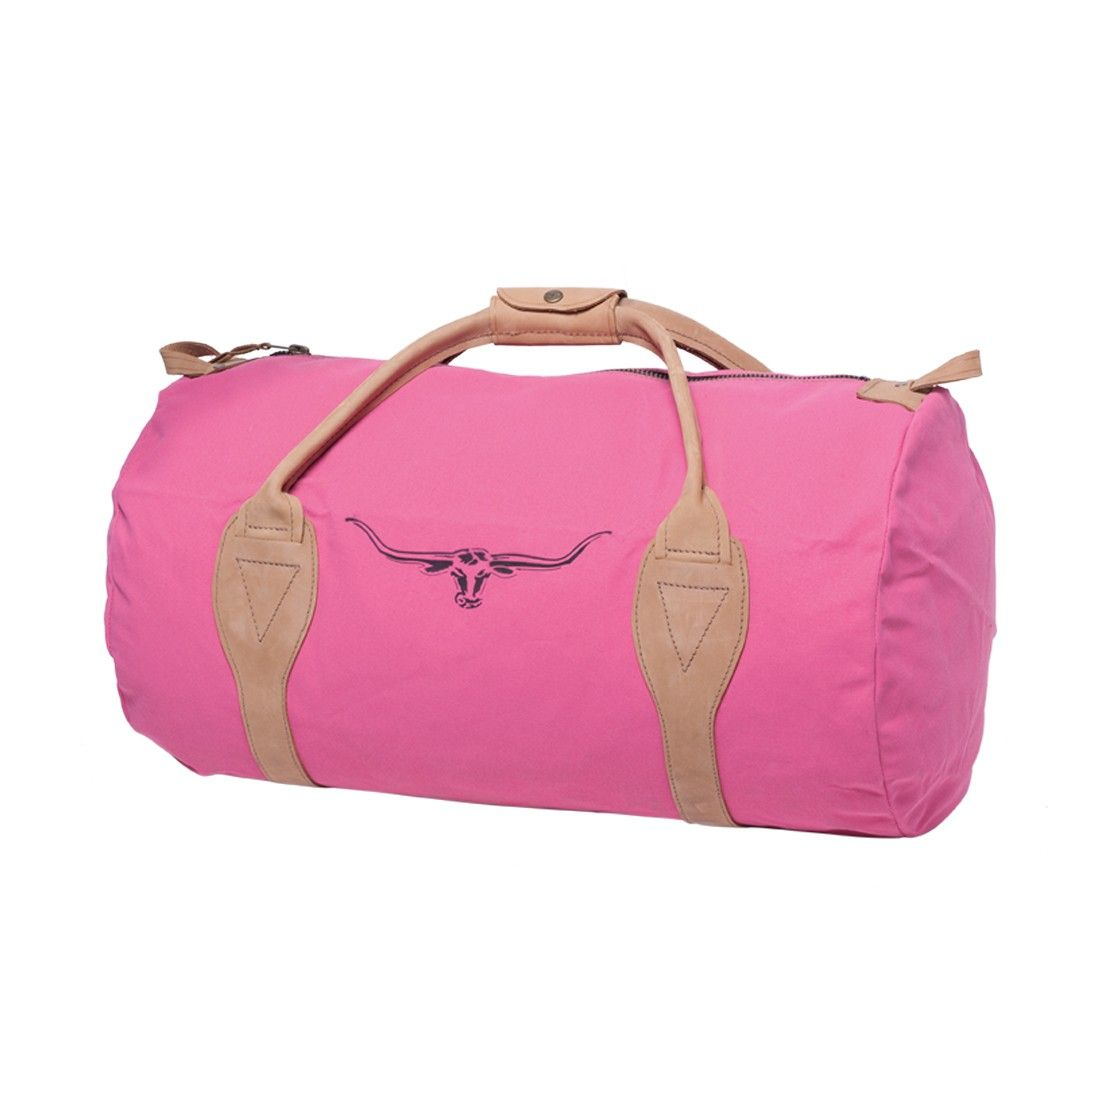 R.M.Williams Canvas Ute Bag Pink Normally  230.00 Now  180.00  4d13df62330fb